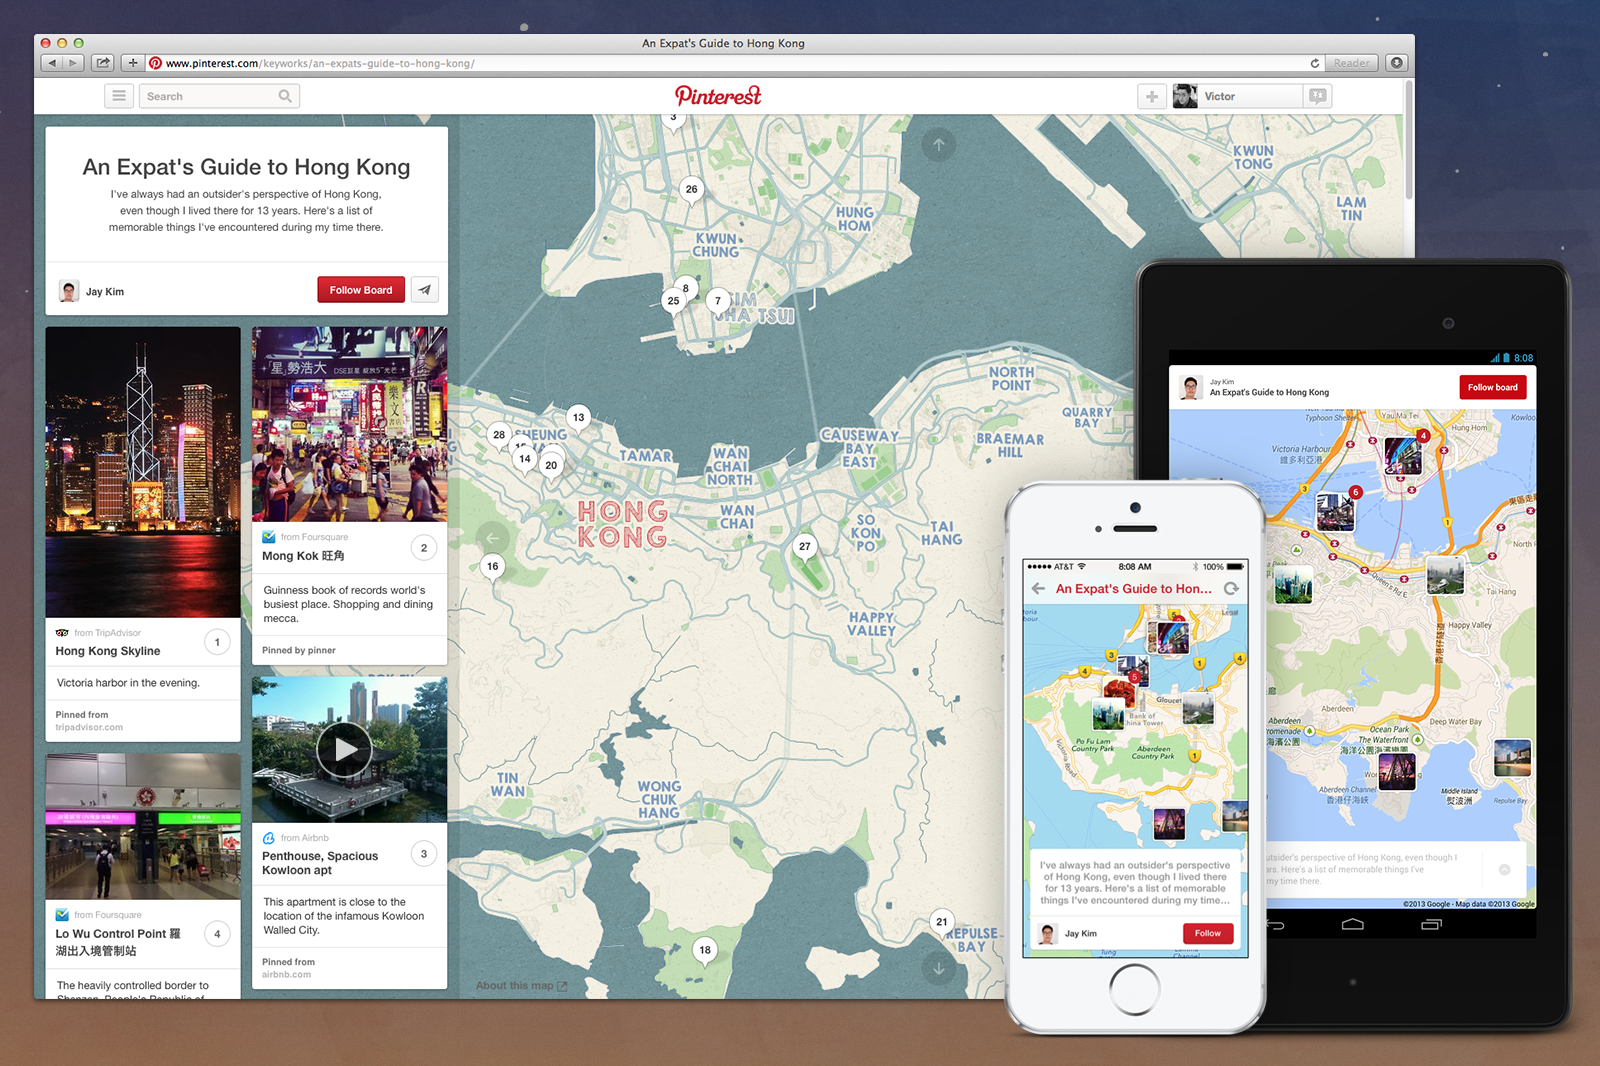 Place Pins All Pinterest moves into travel after launching new tools to help users plan trips